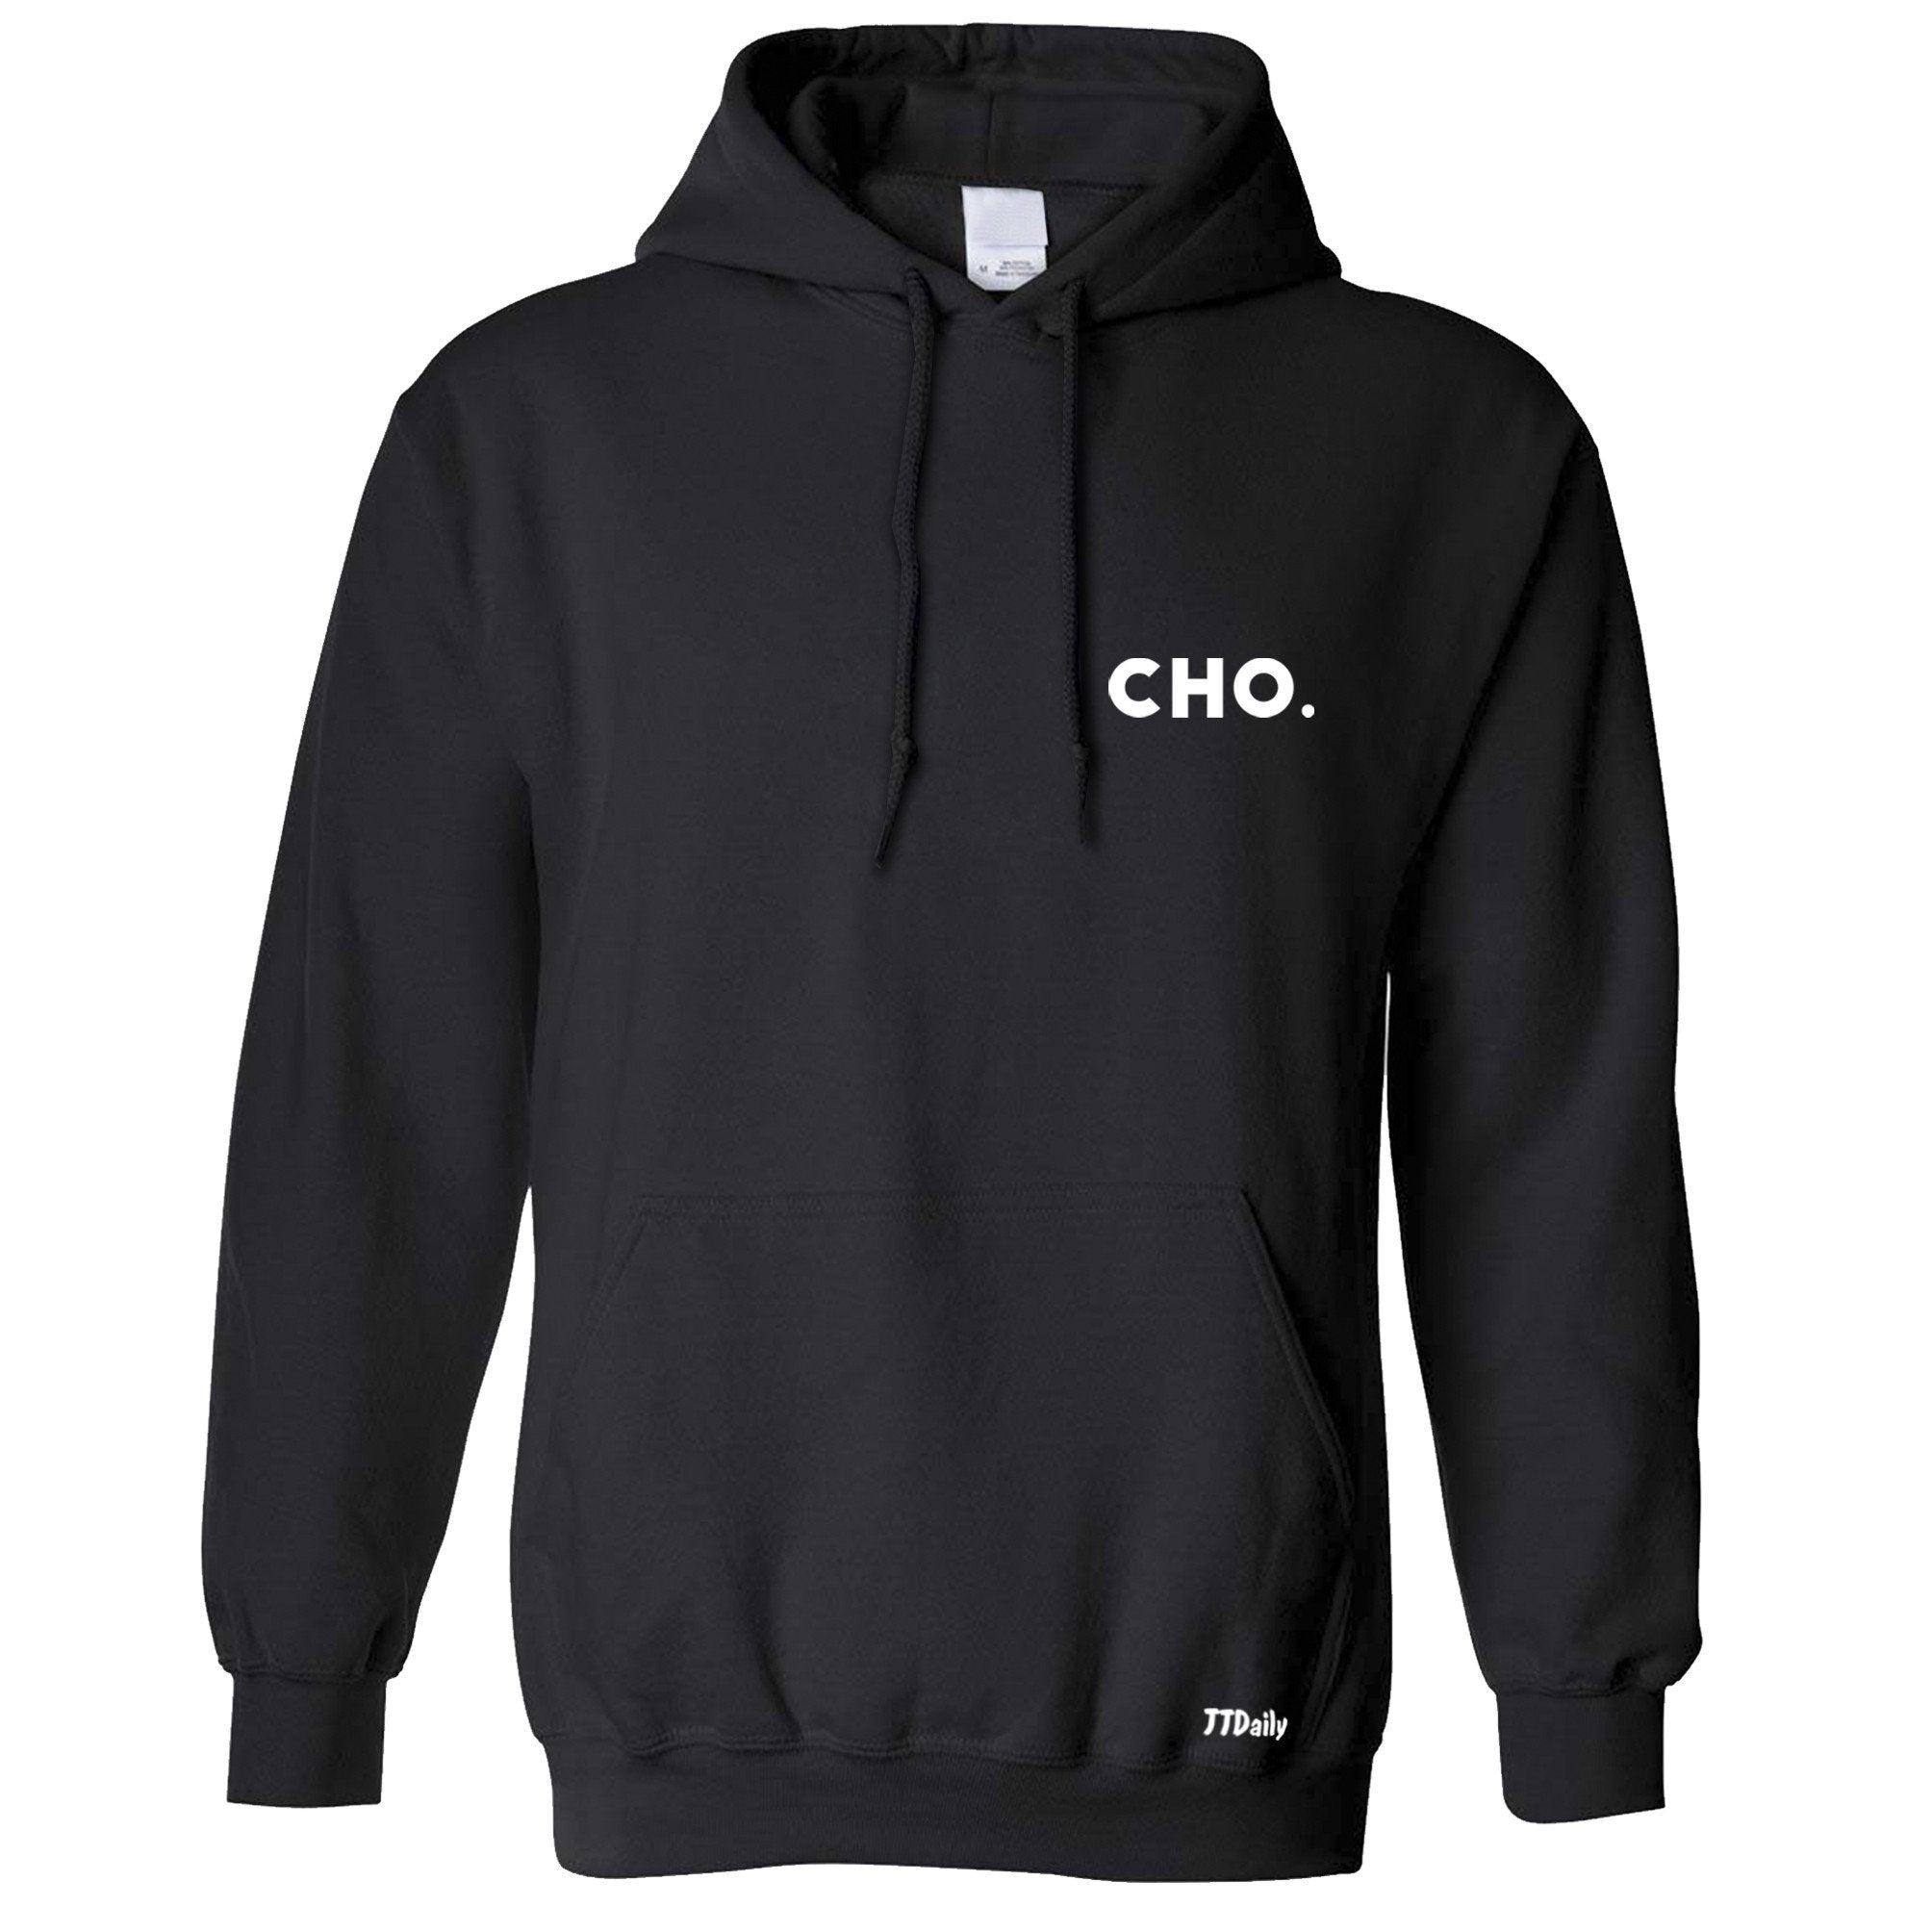 Table Tennis Hoodie Cho Pocket Print Point Win Ping Pong Hooded Jumper